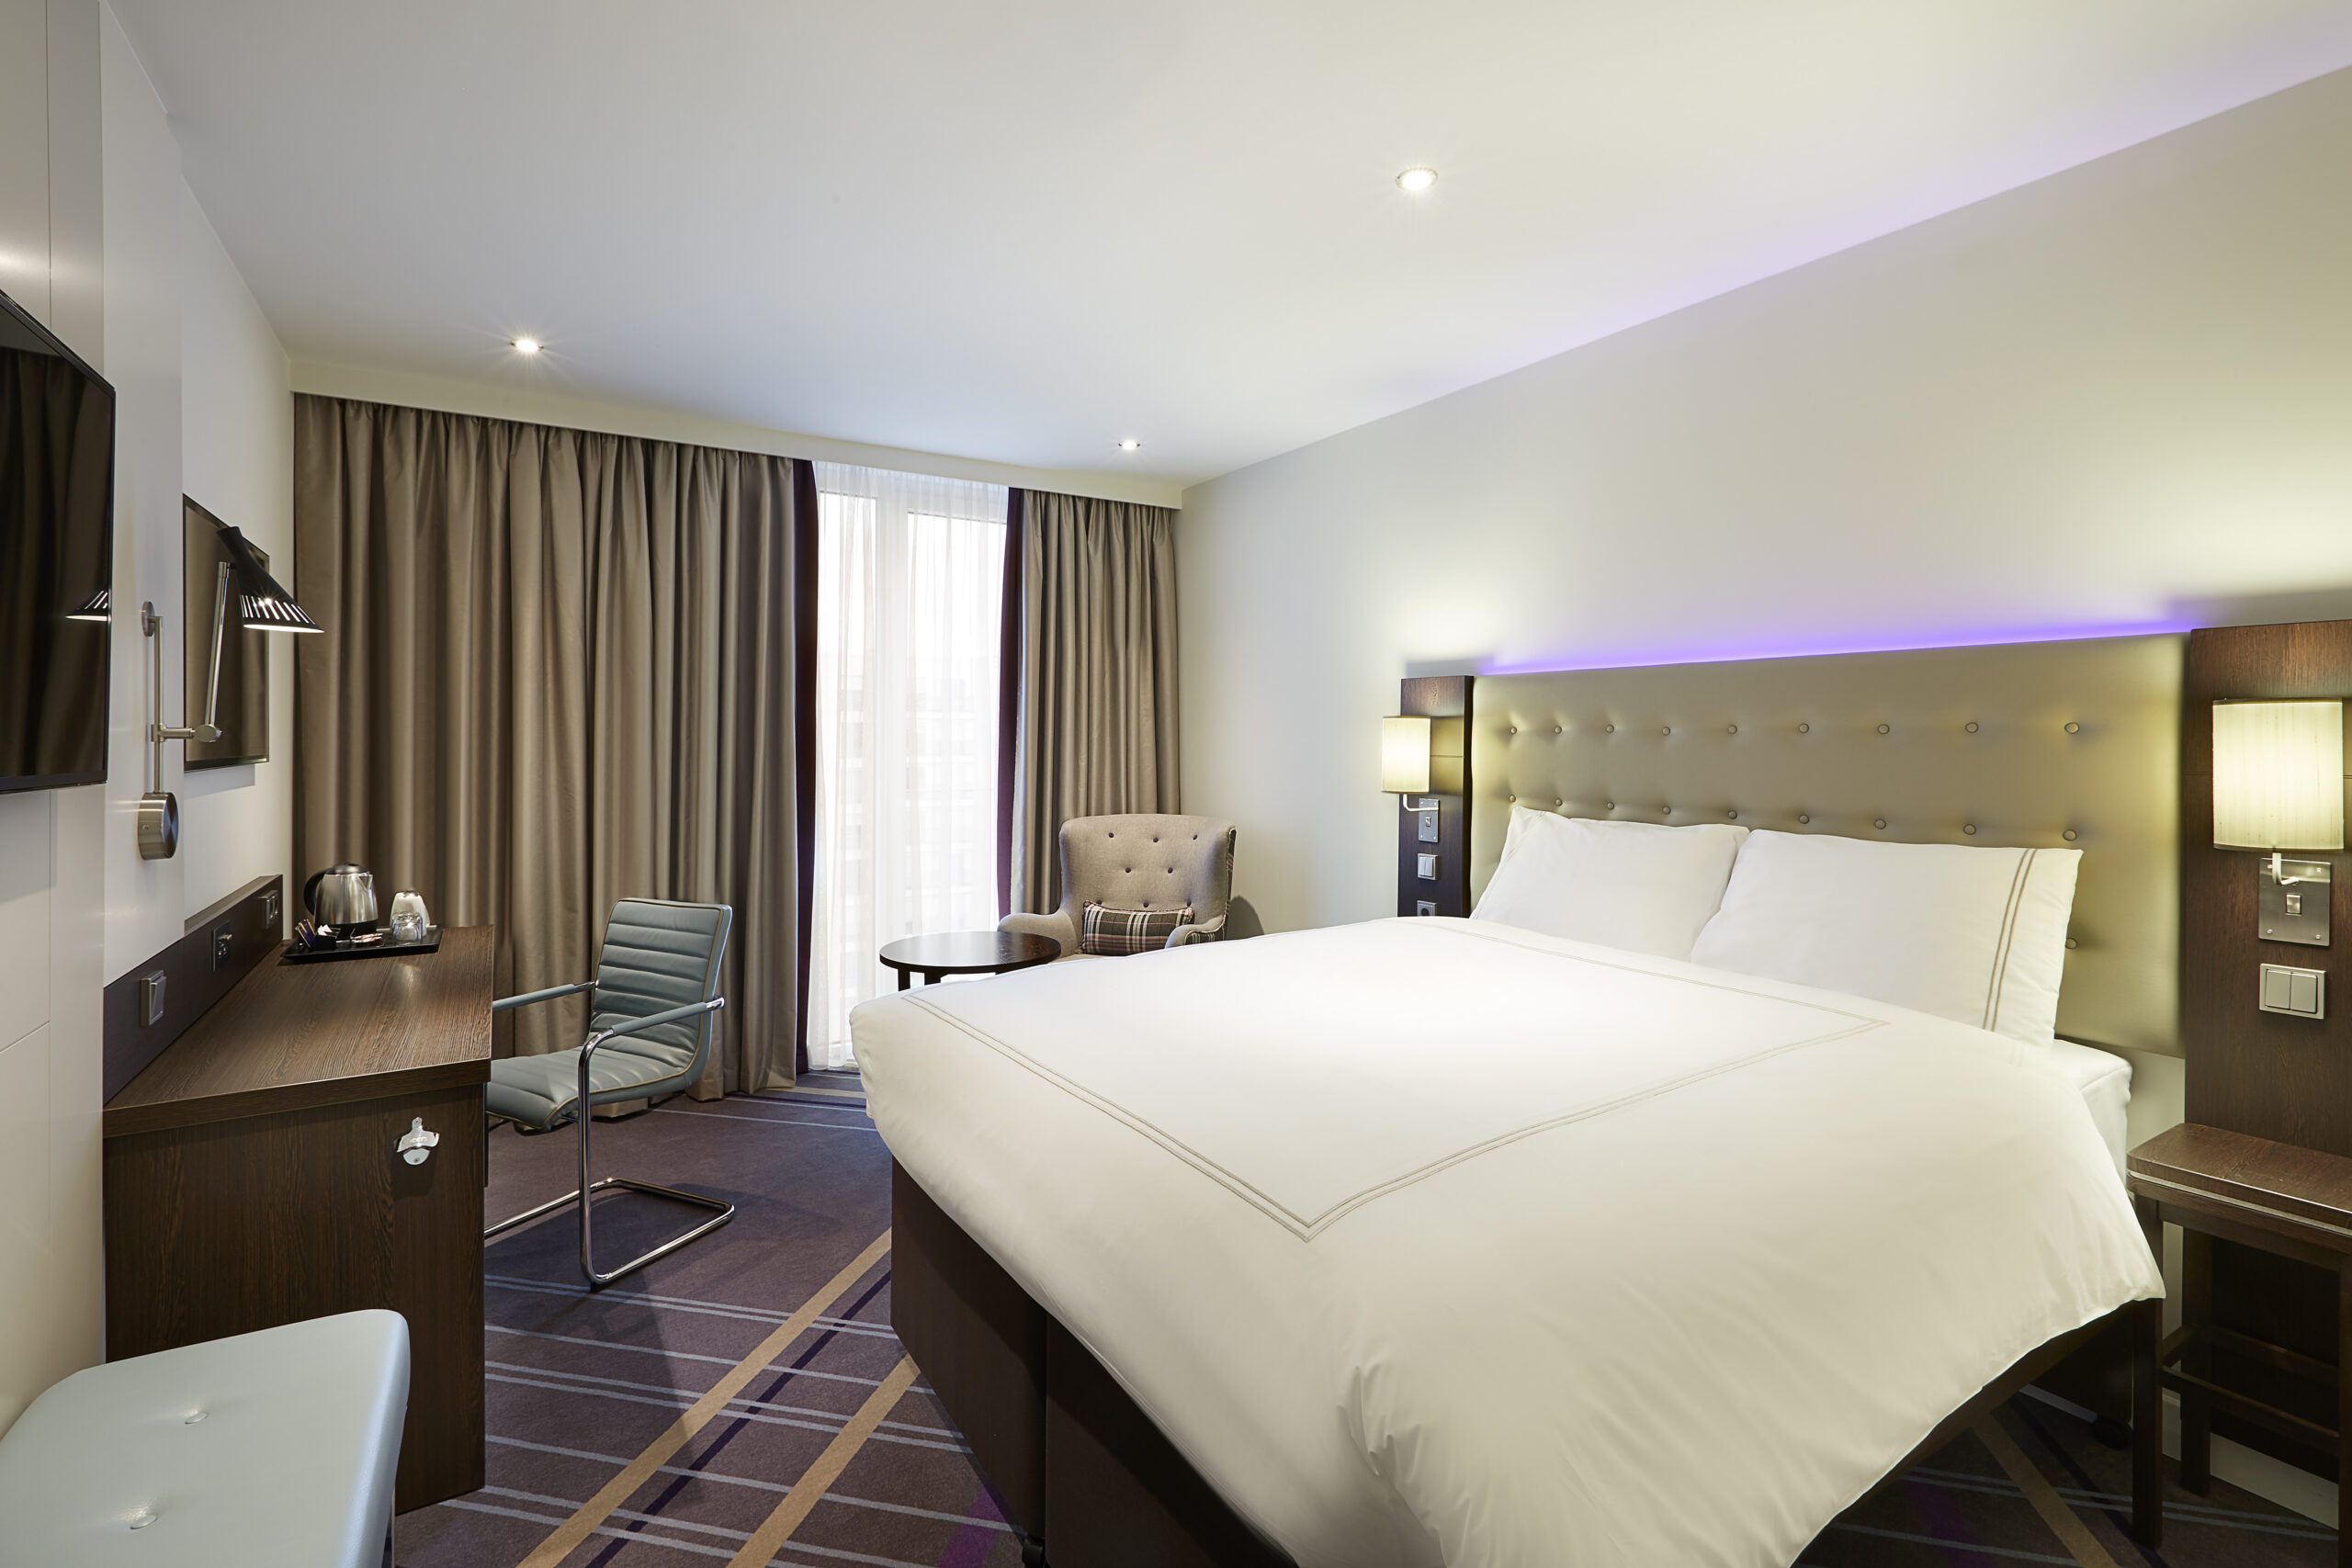 Premier Inn Hamburg City Ost Hotel